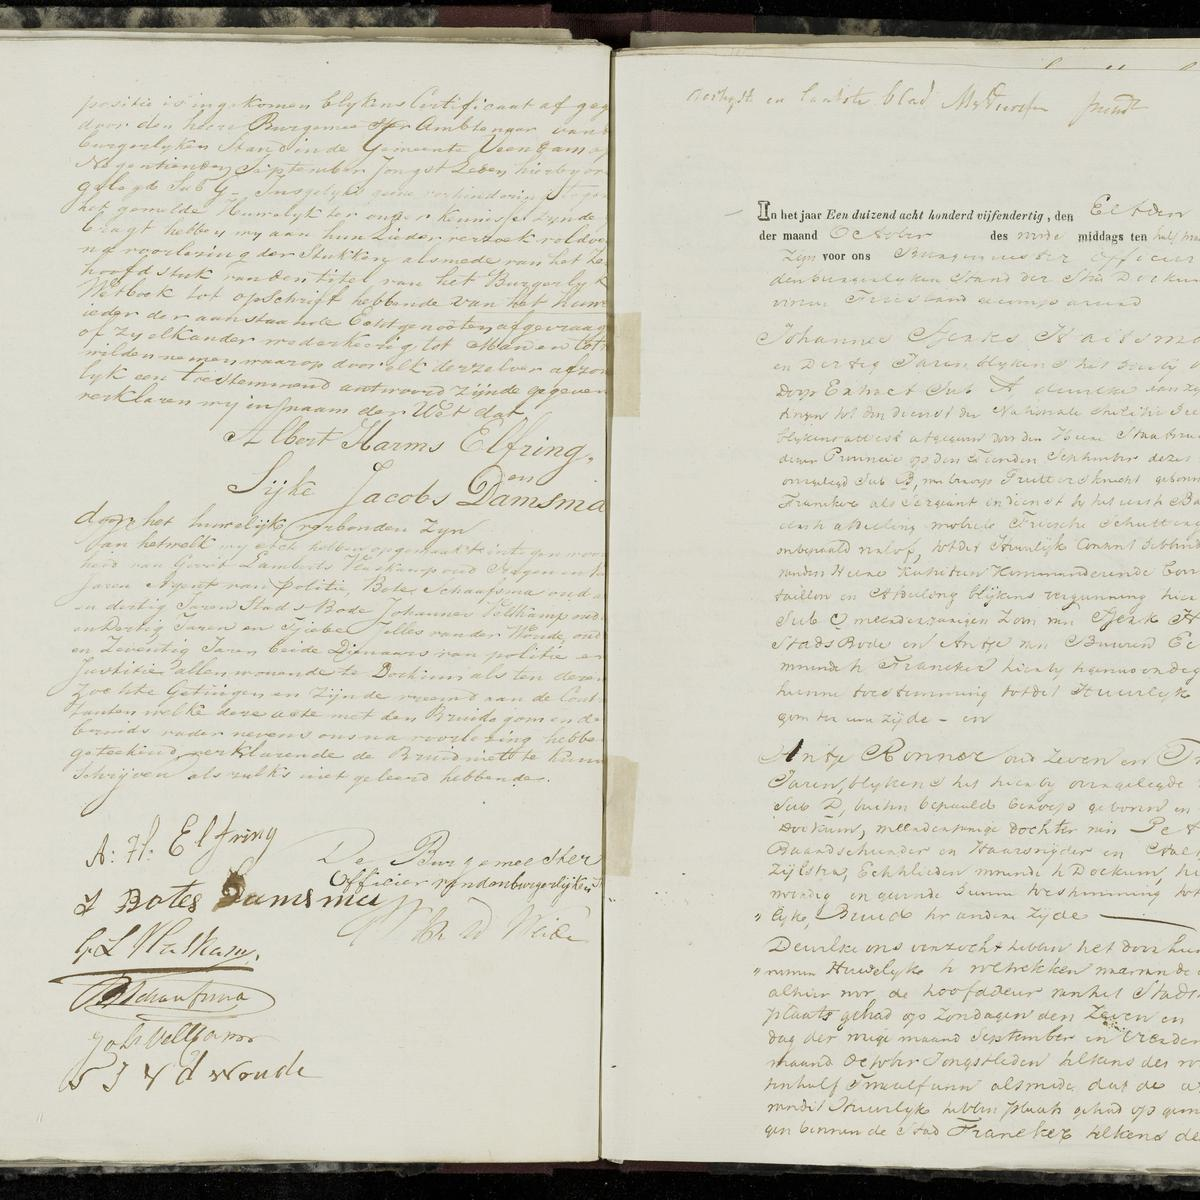 Civil registry of marriages, Dokkum, 1835, records 29-30